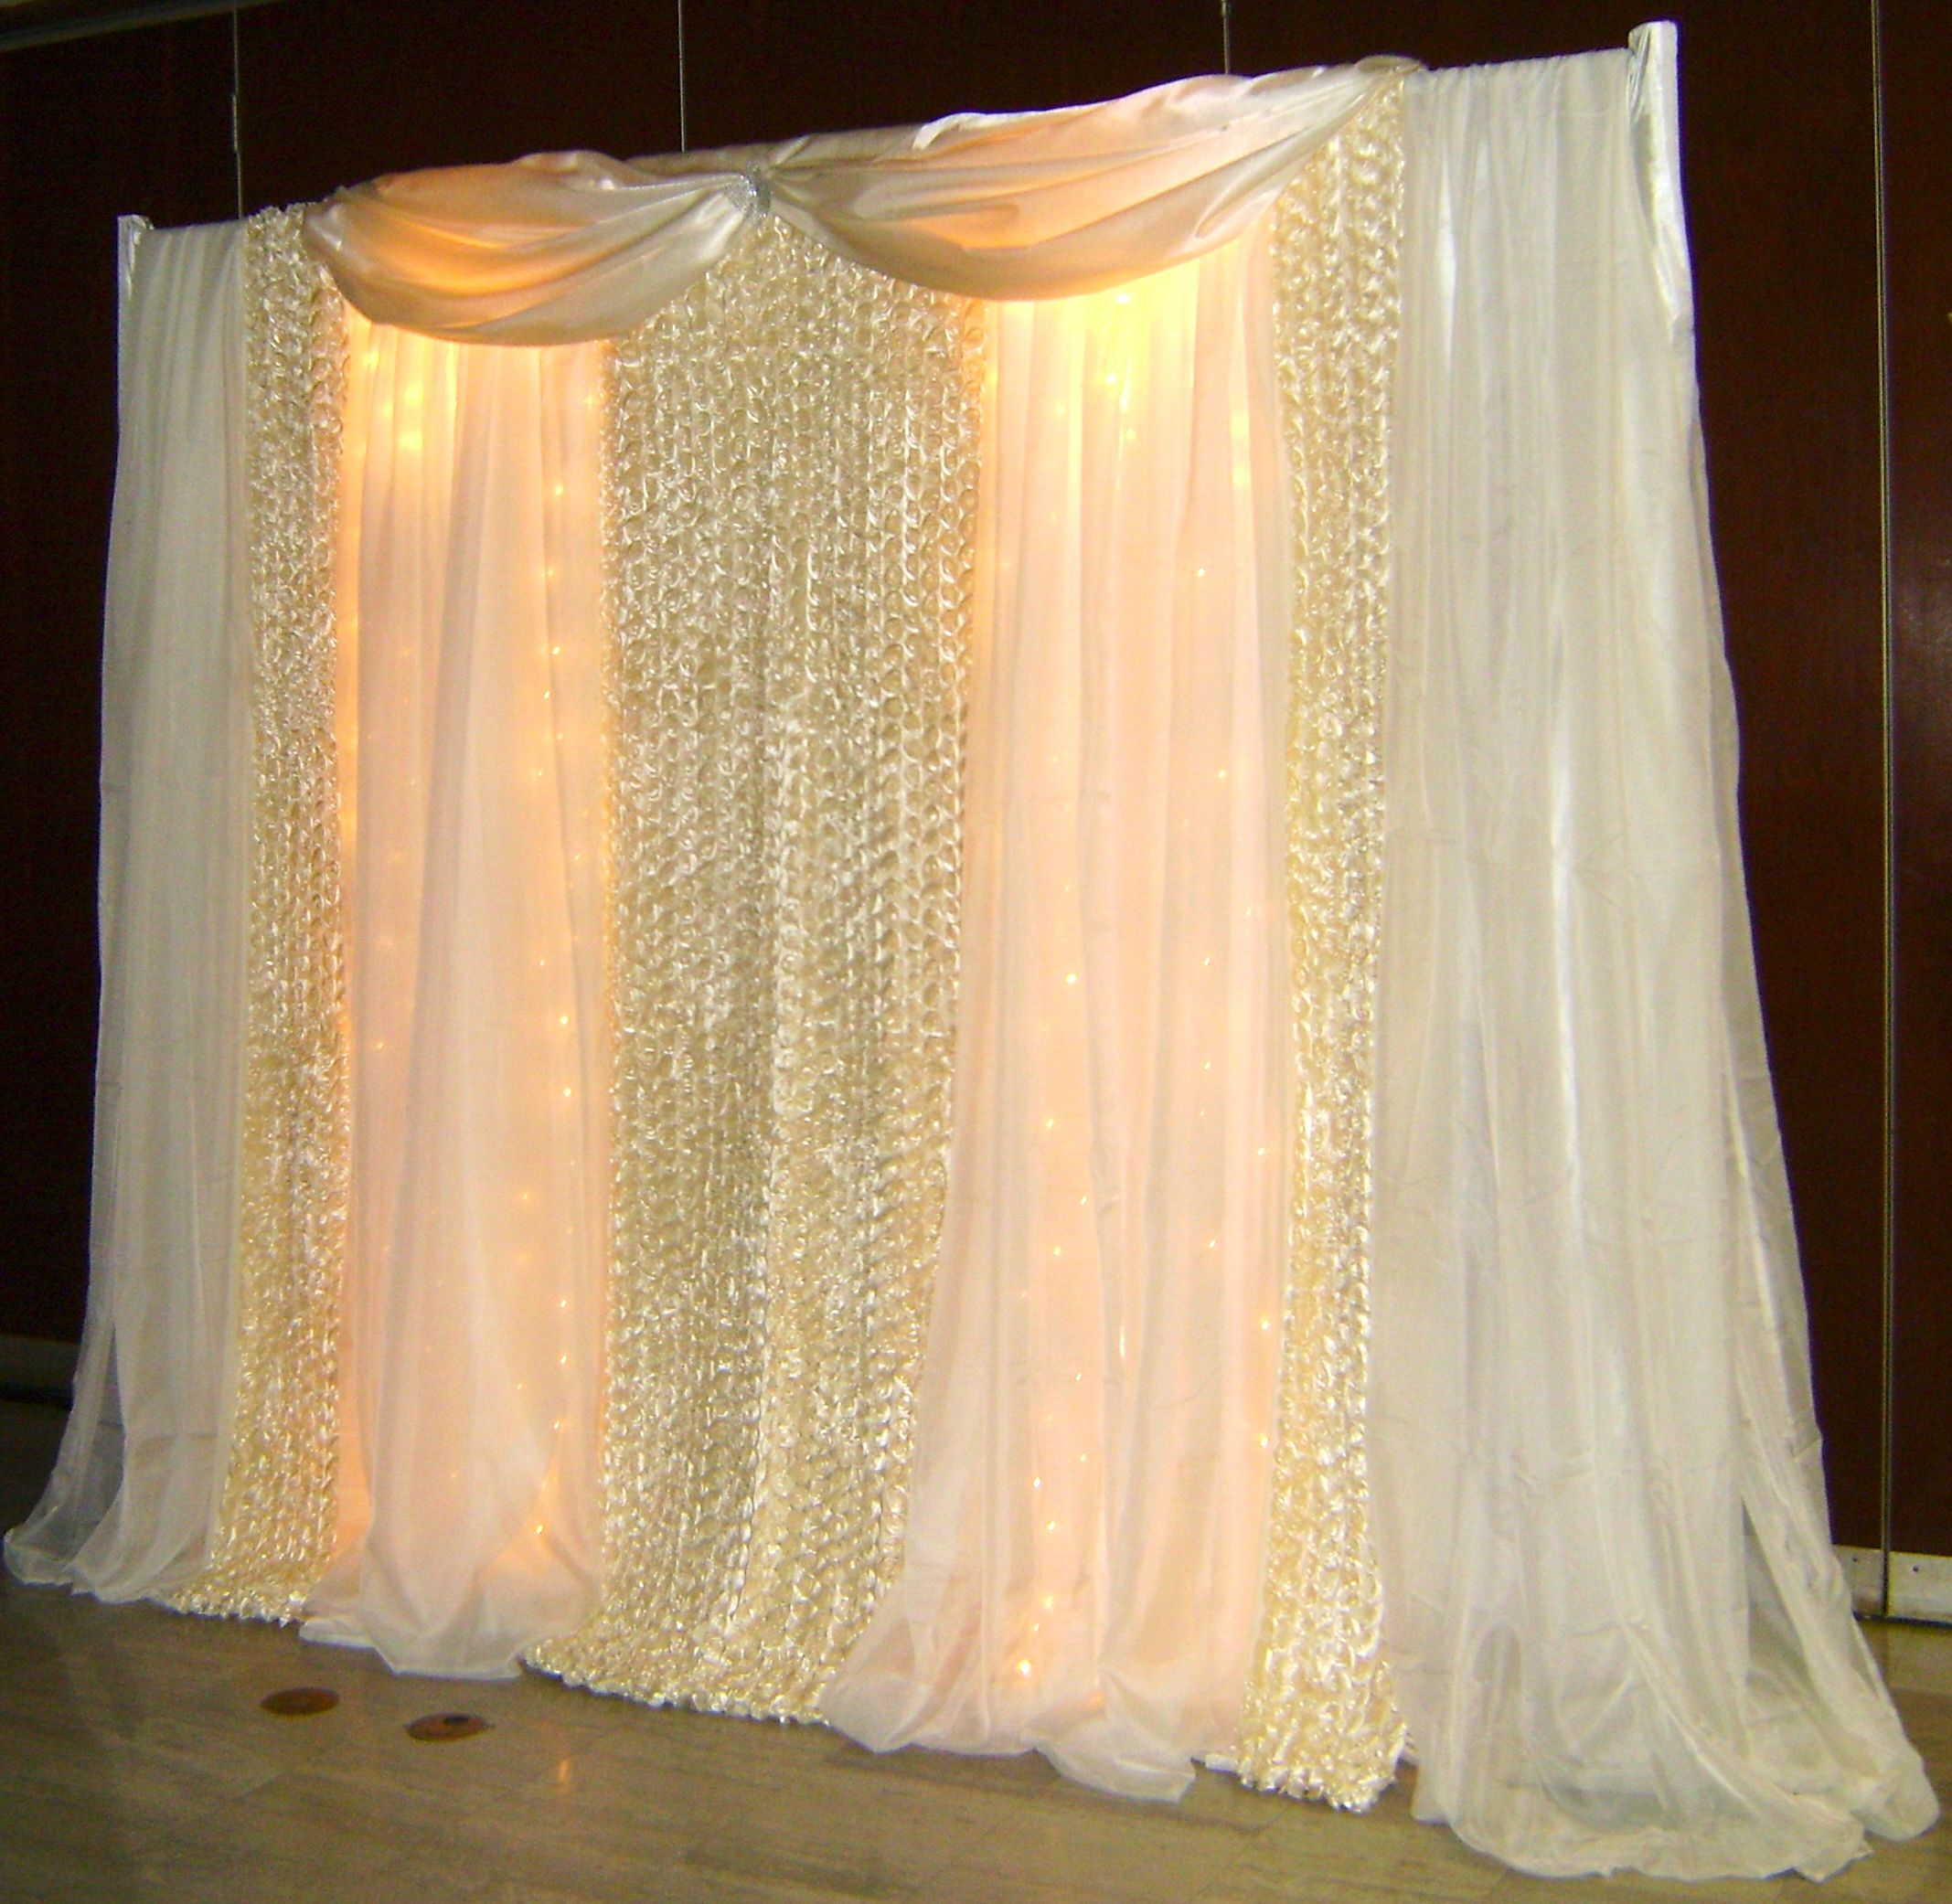 DIY Wedding Backdrops Ideas | This backdrop is designed ...